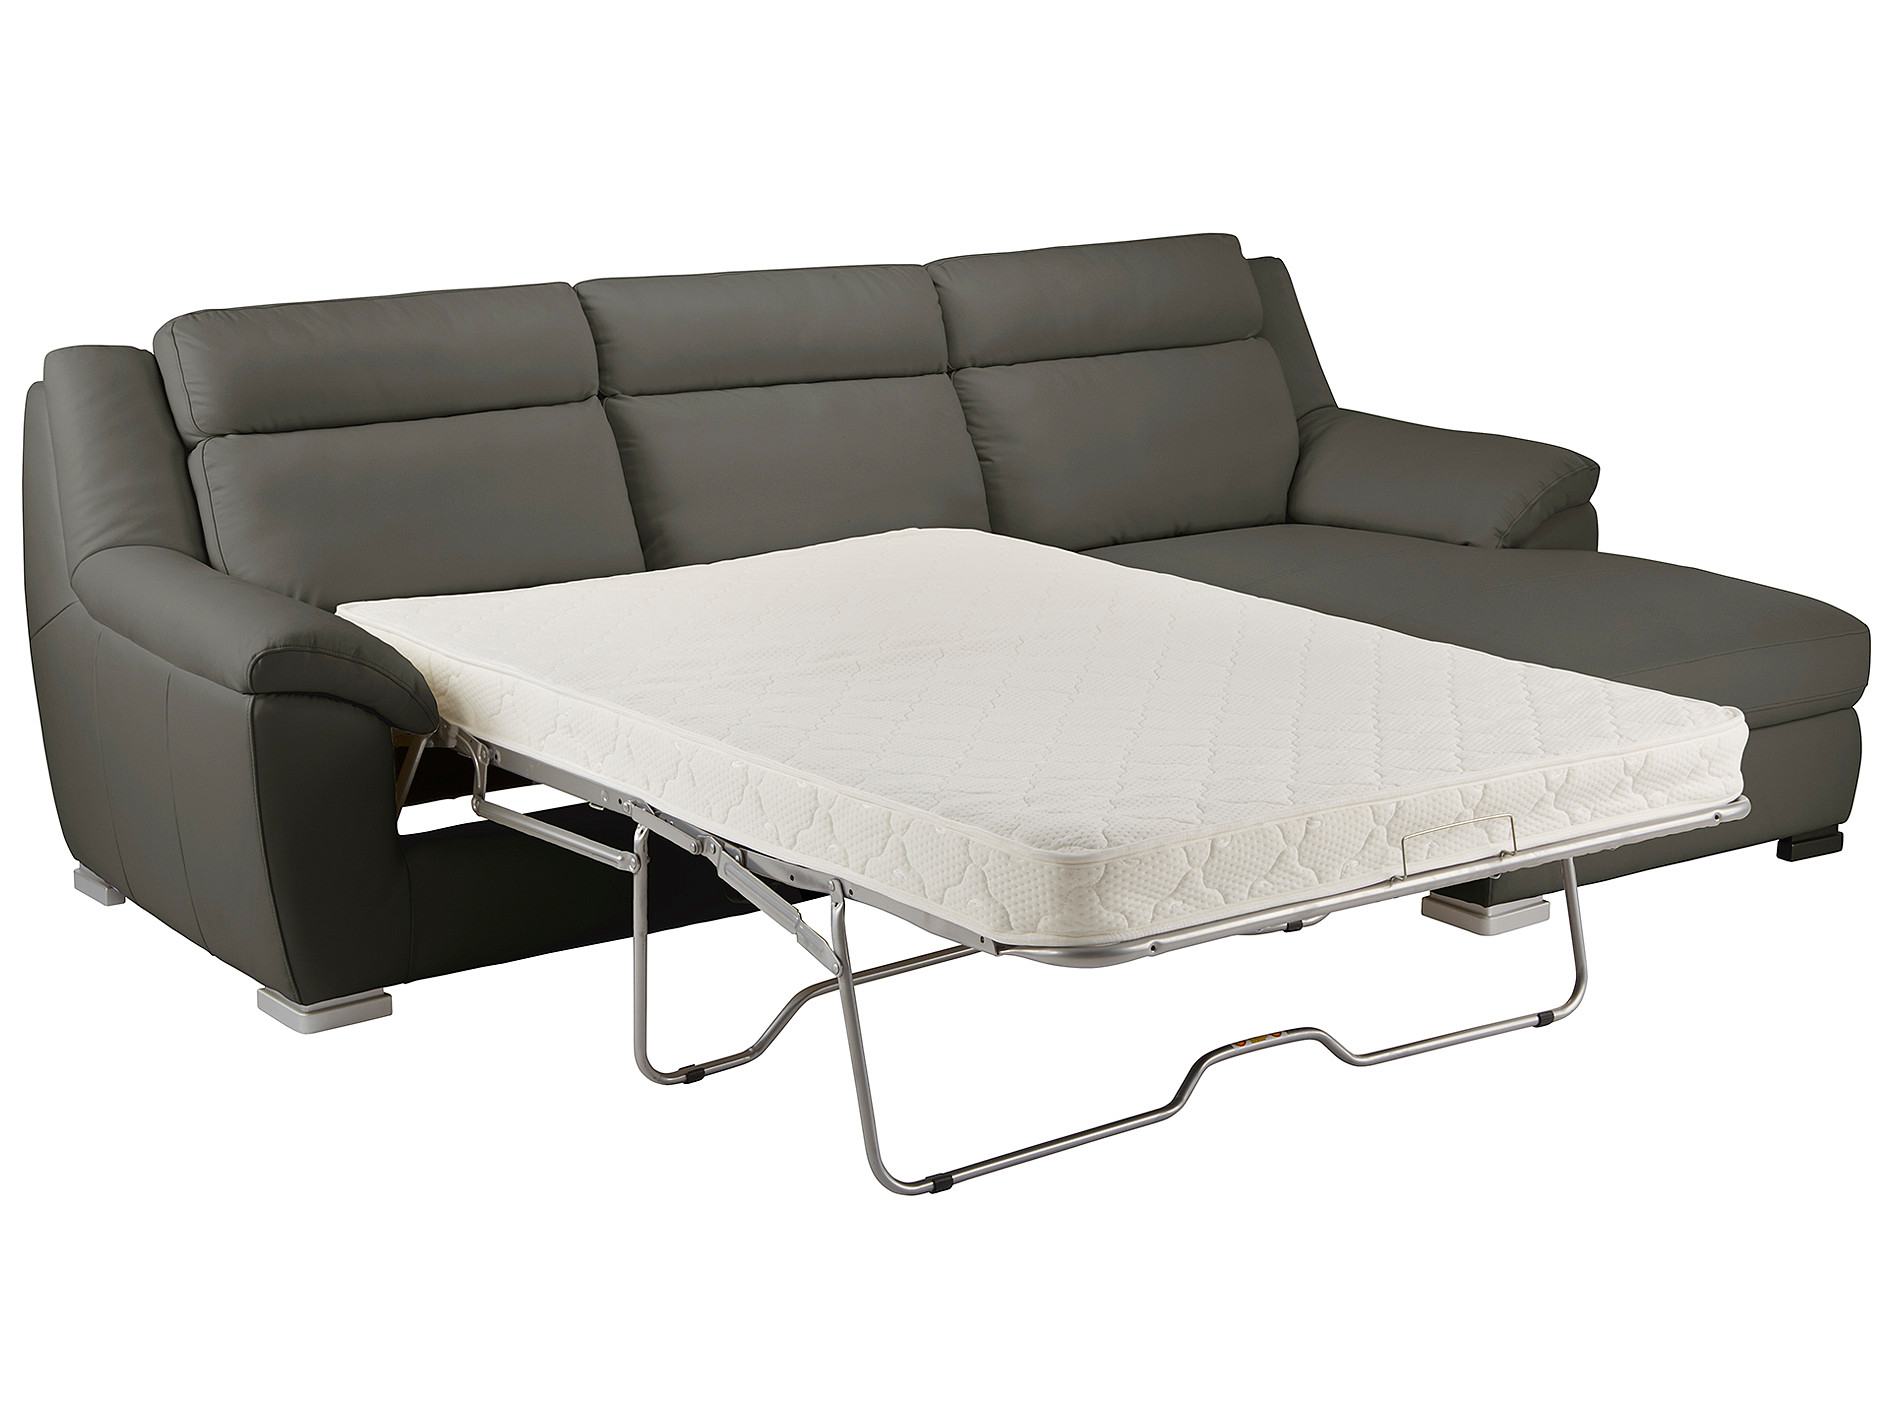 corner sofa bed roma grey boconcept review lincoln with double right facing in